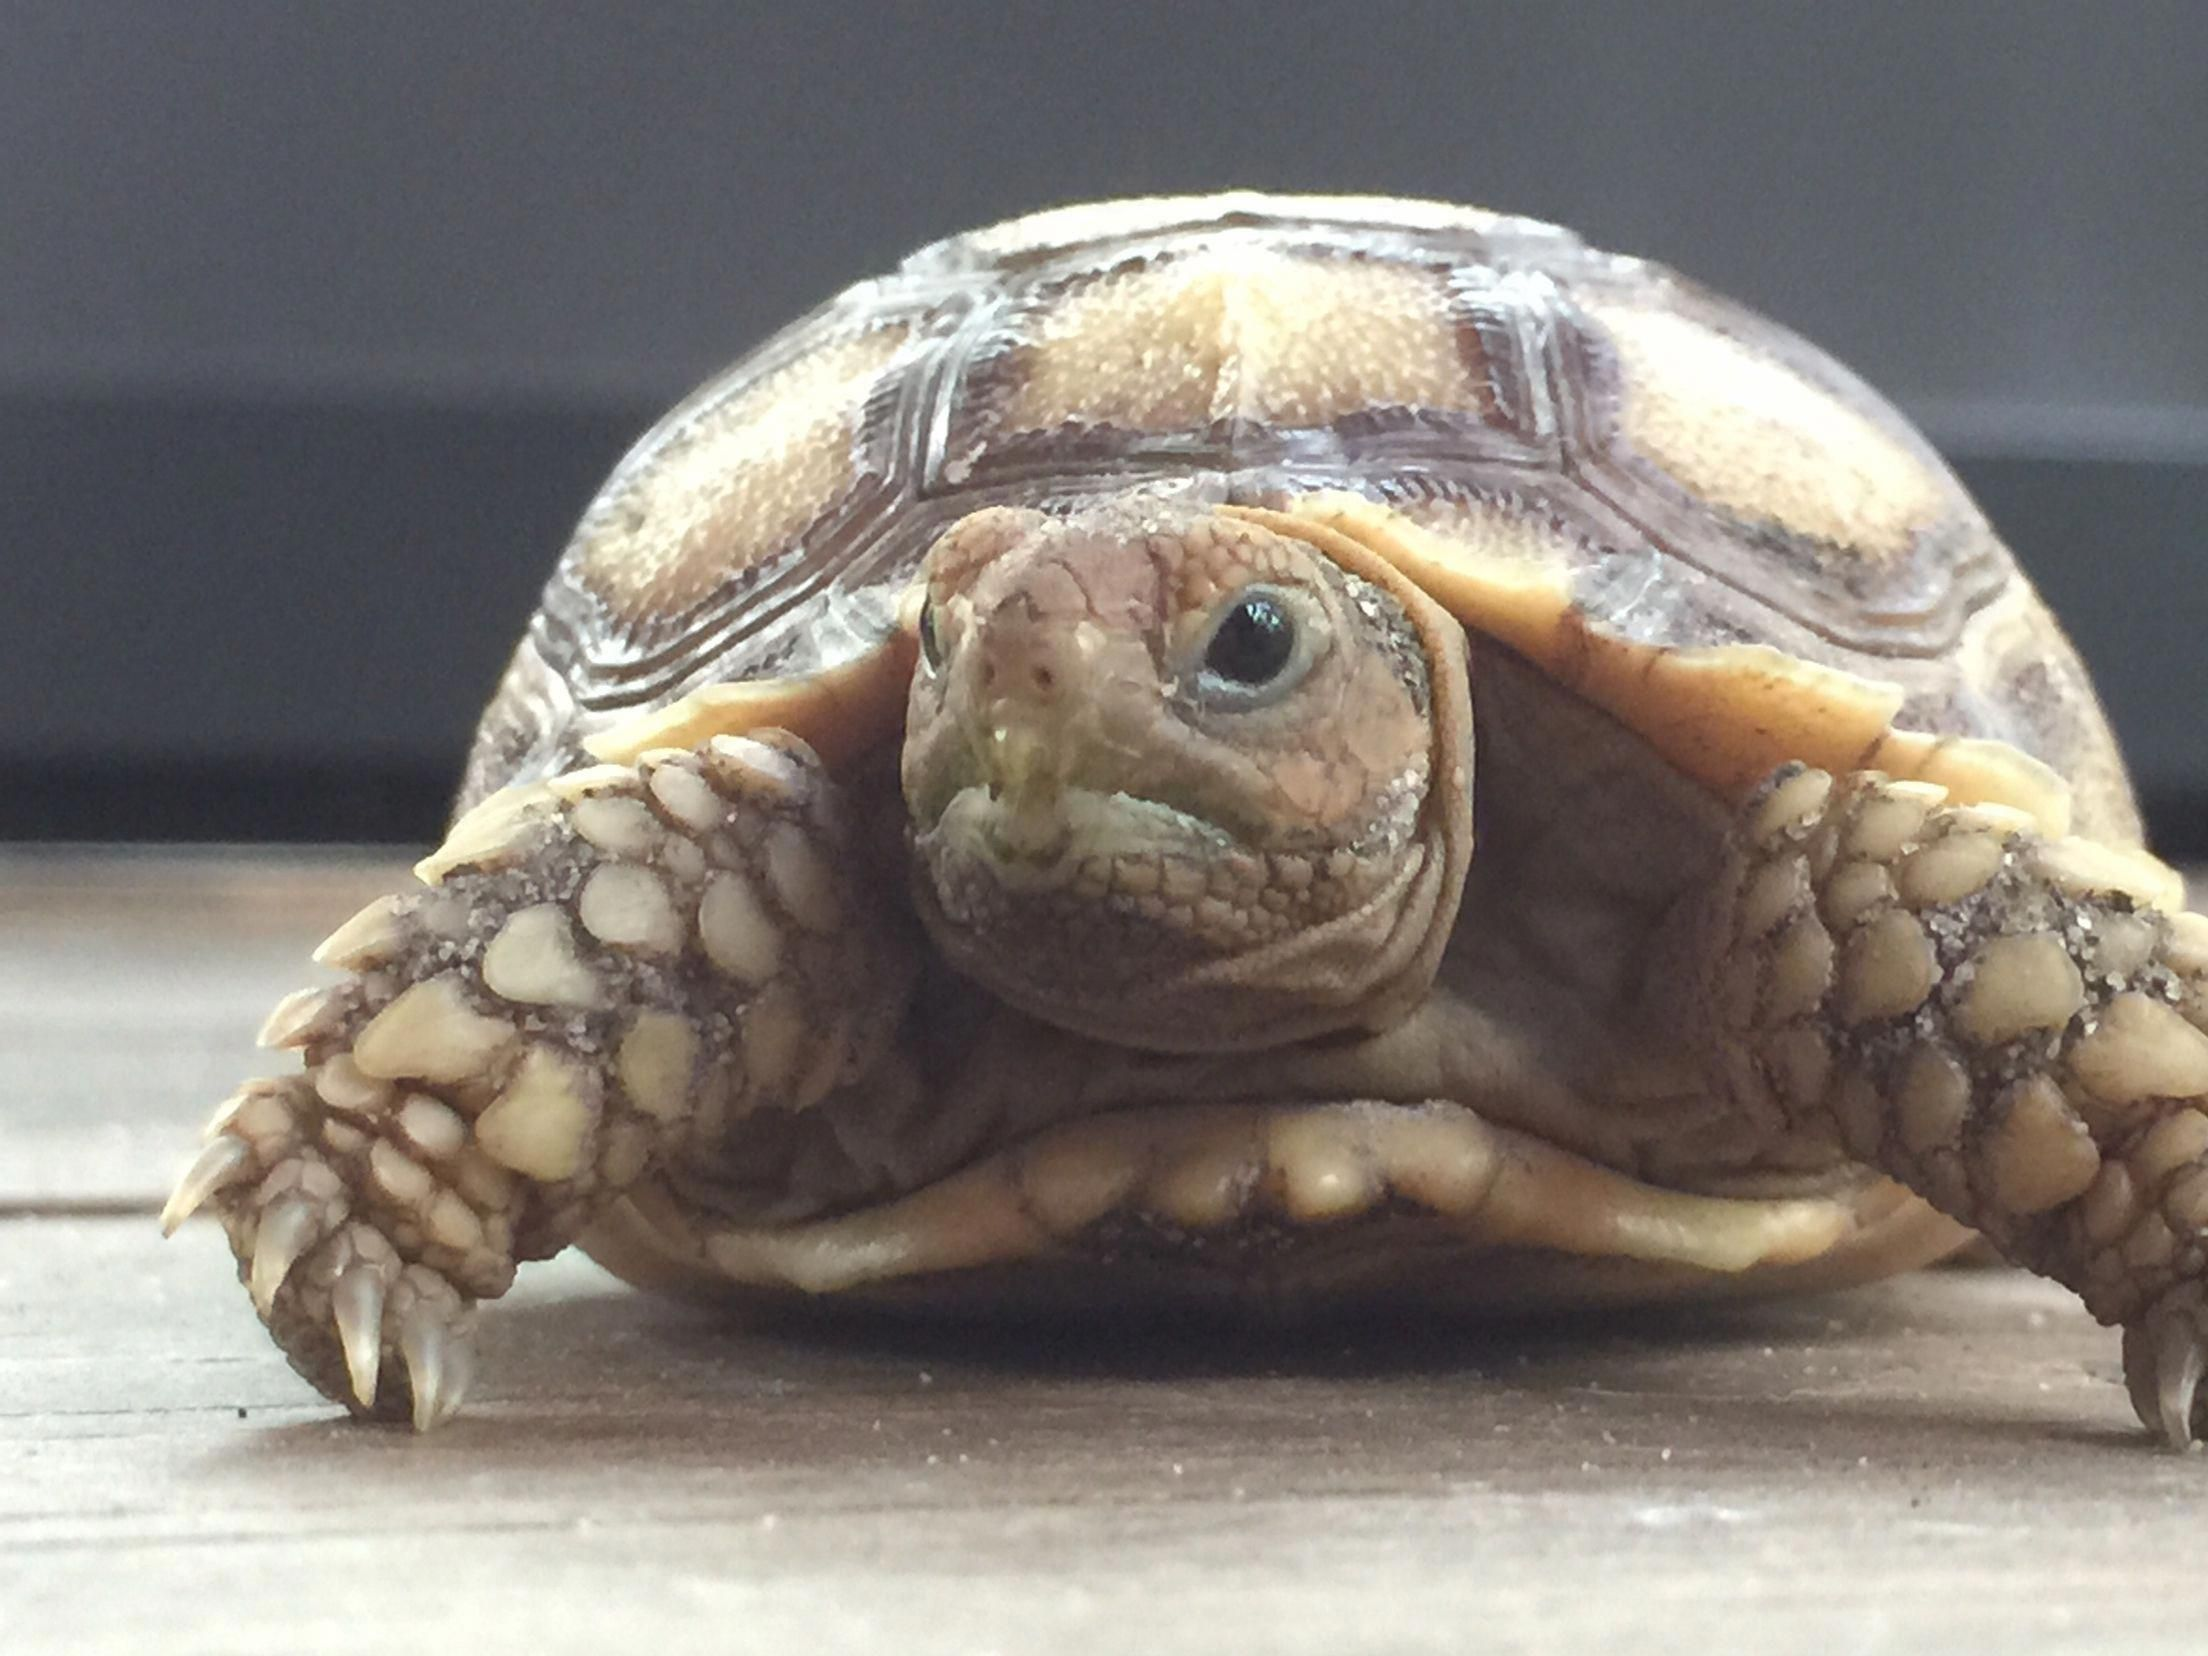 VULNERABLE: A baby African Spurred Tortoise, native to the ...